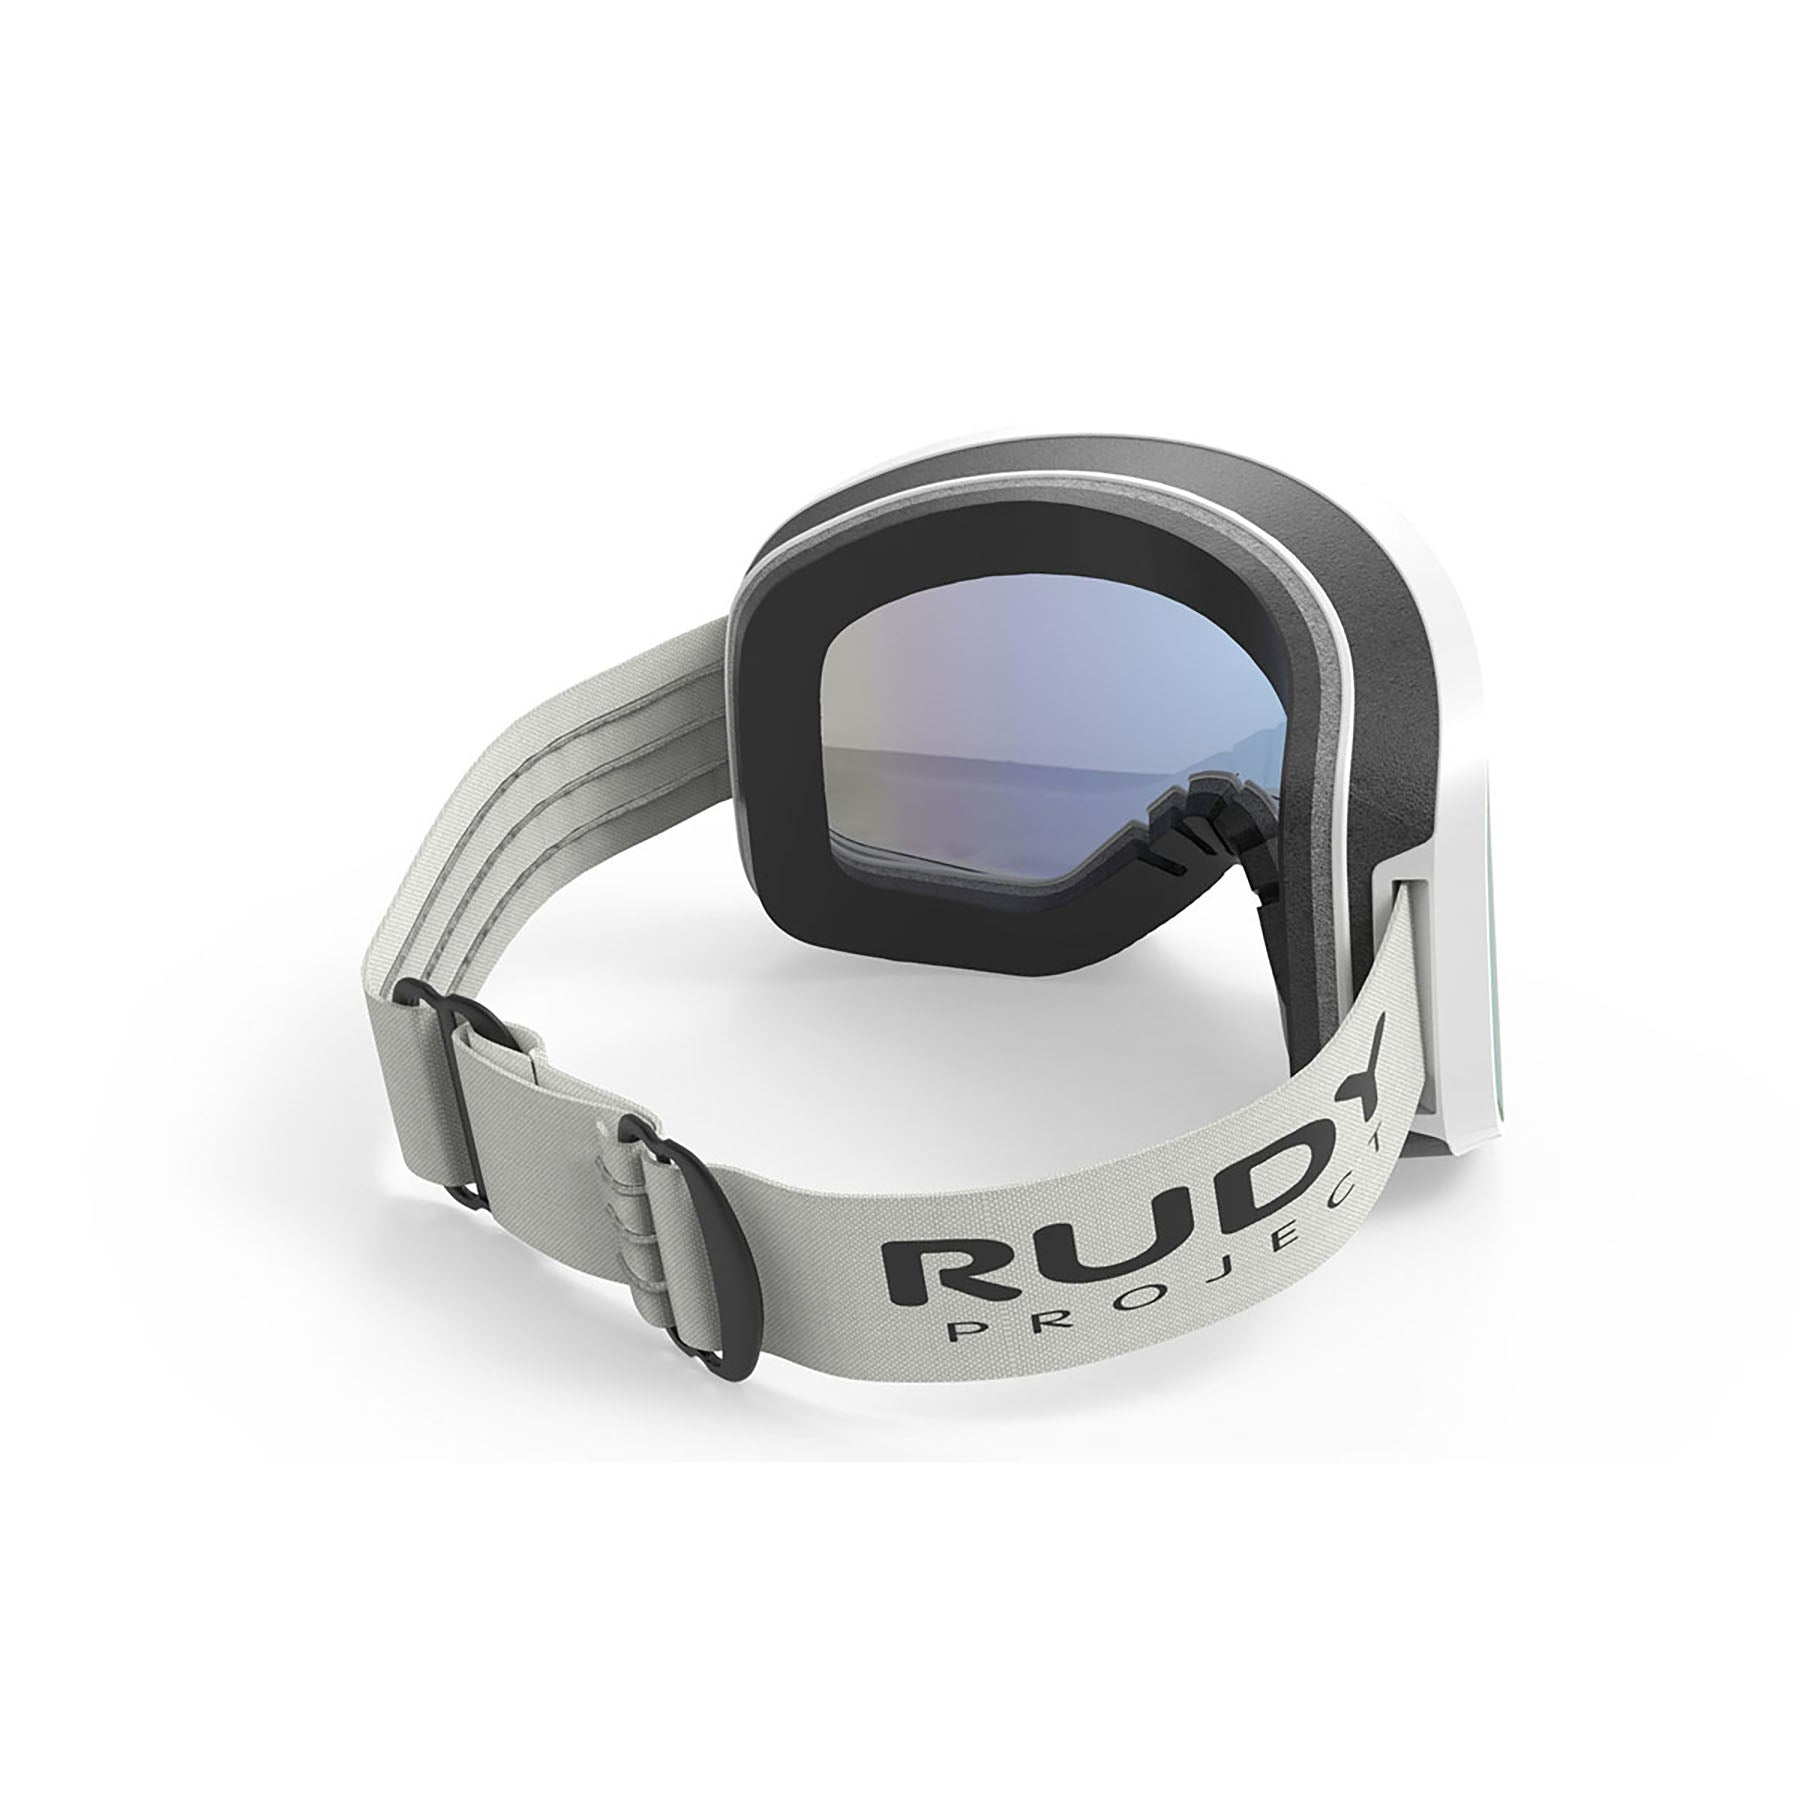 Rudy Project - Skermo - frame color: White Matte - lens color: Multilaser Blue